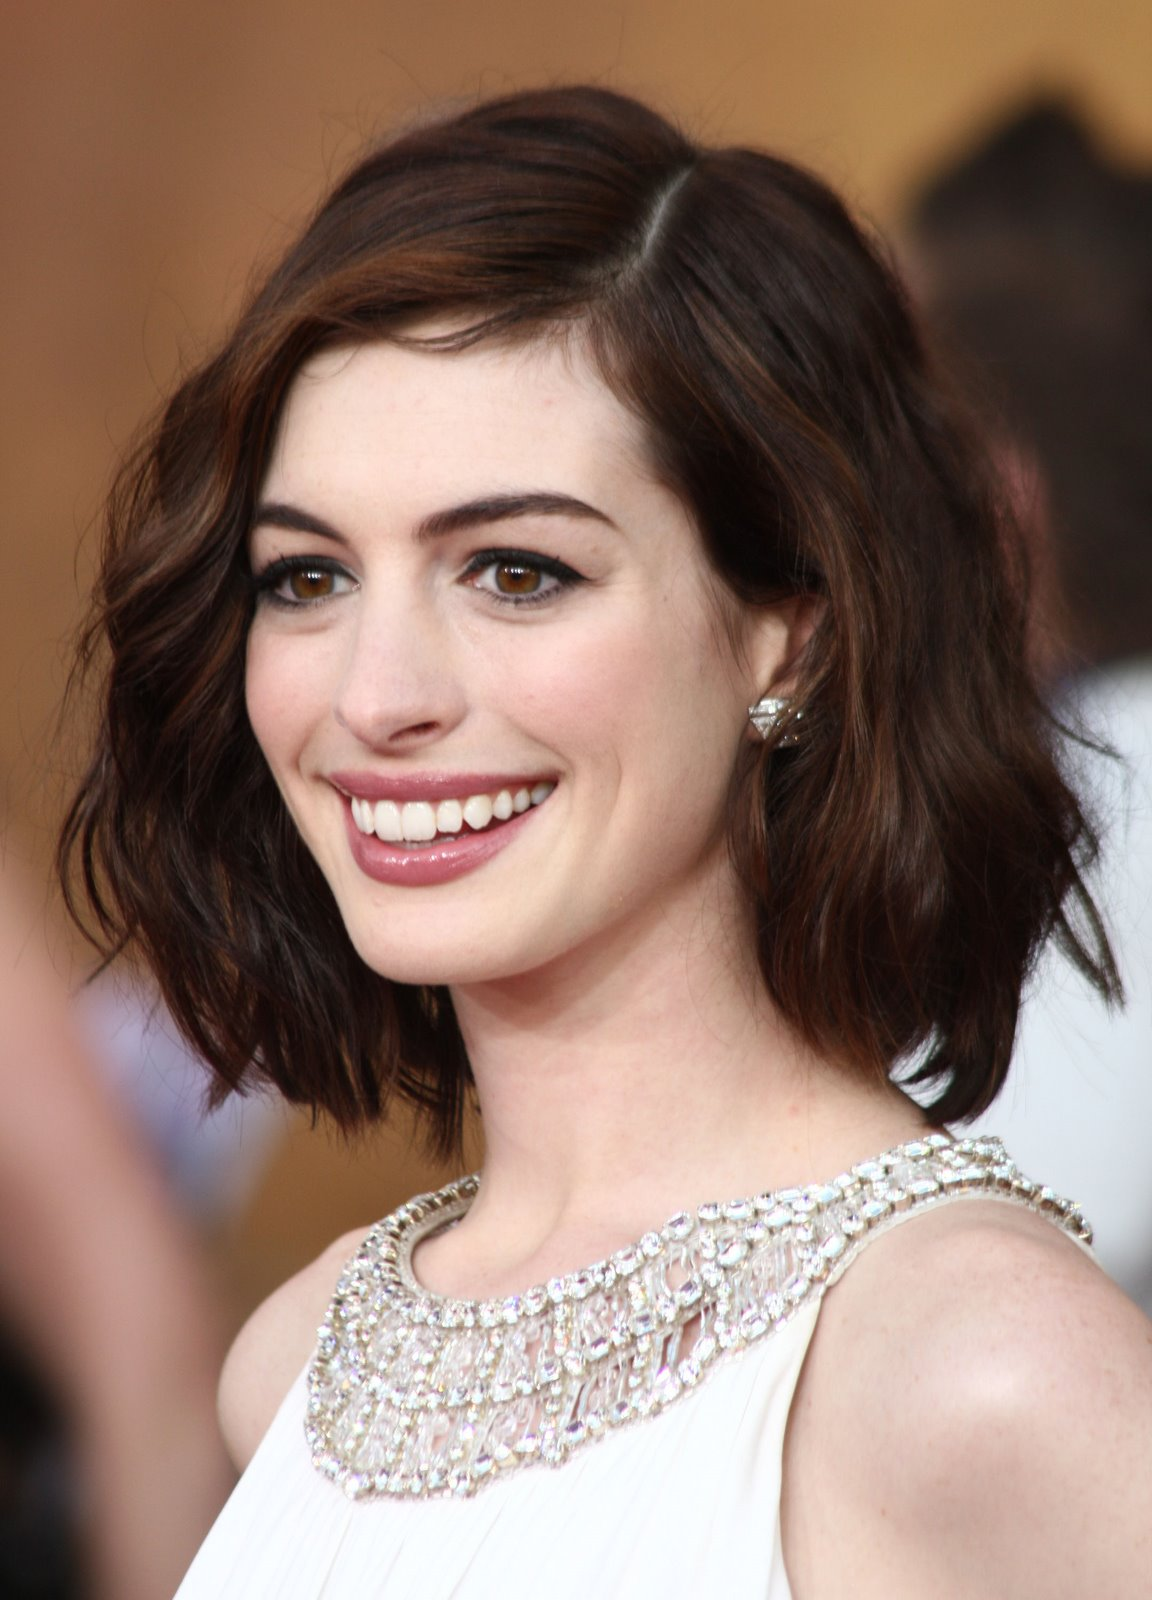 Short Hairstyles For Prom find this pin and more on hair style by coraliapa11 8 Textured Side Part Cut